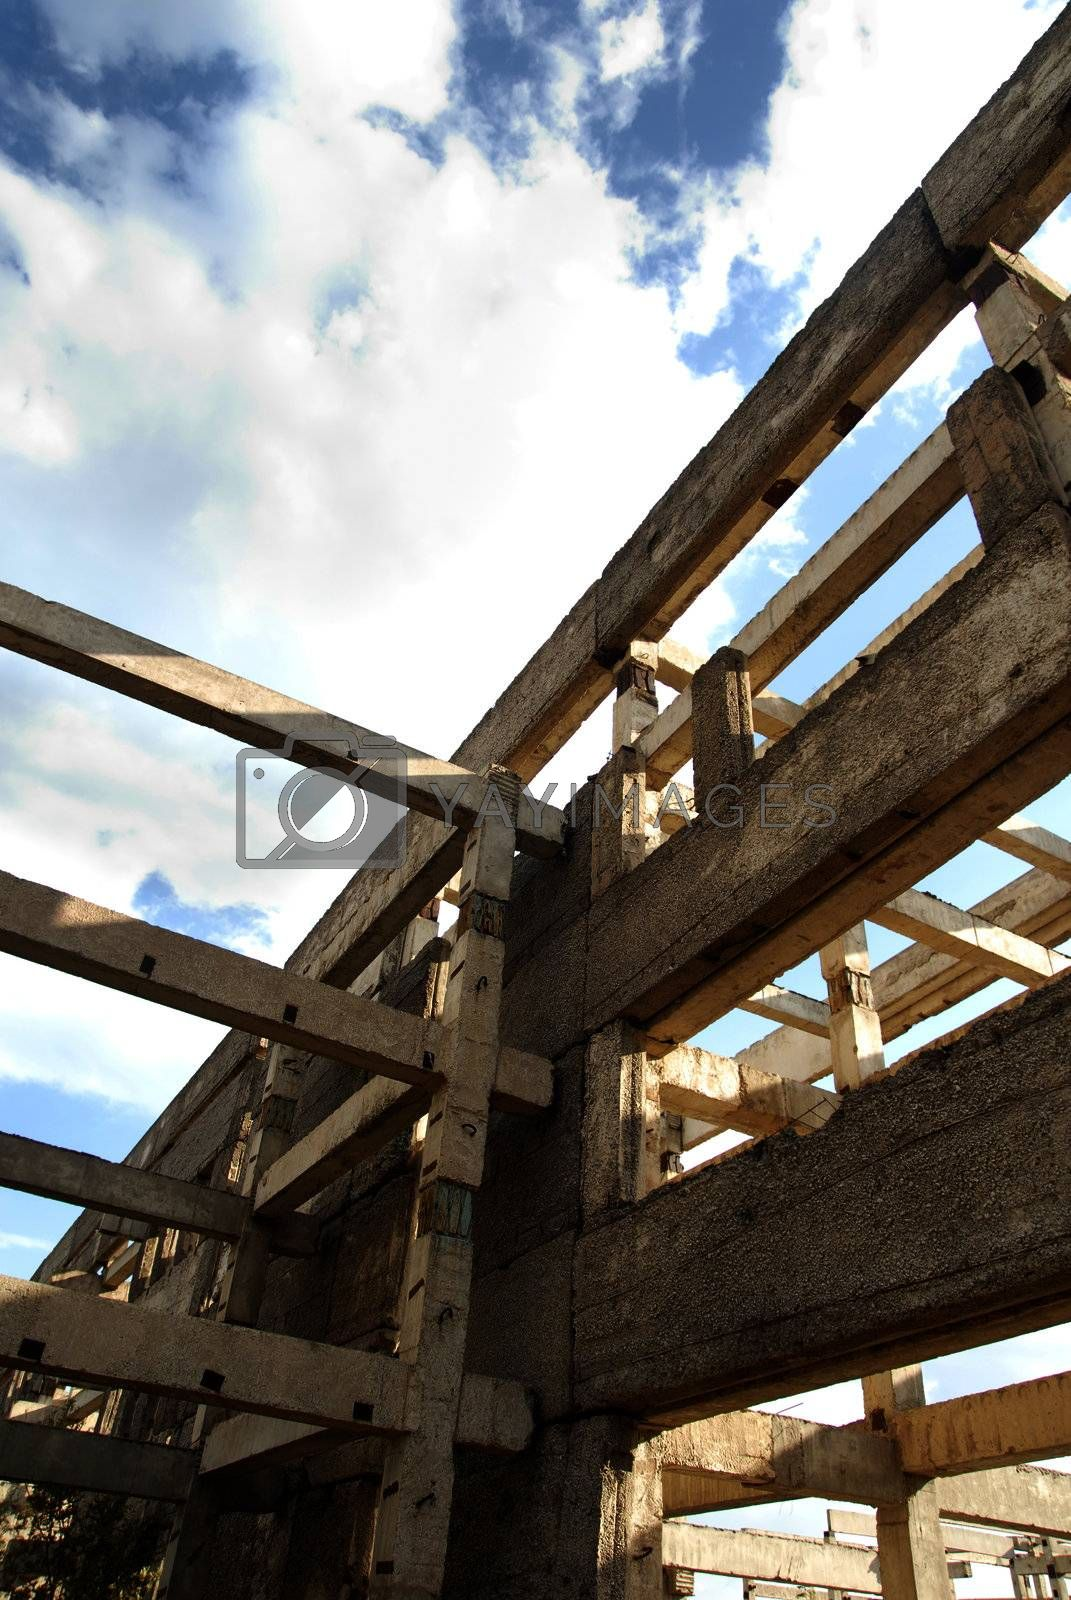 Perspective photo of the building structure and cloudy sky